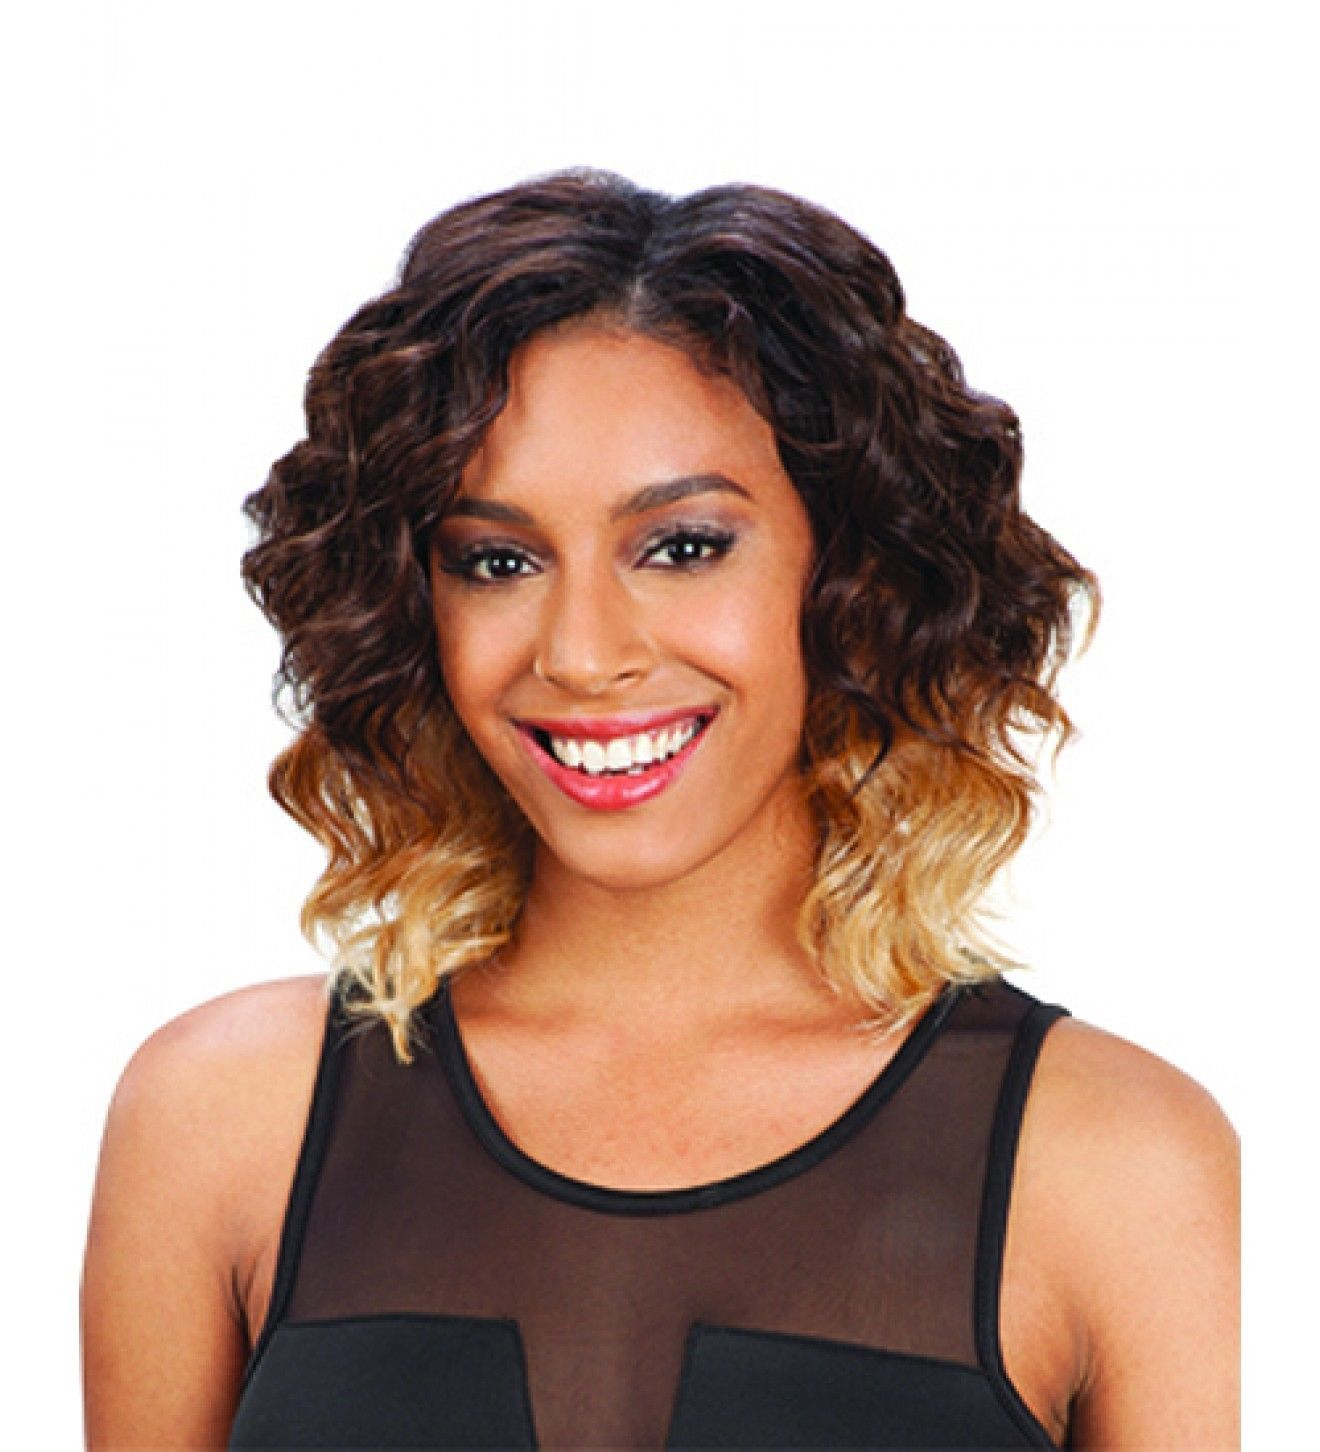 Attrak 5pcs Que By Milkyway Human Hair Blend Weave Extension Short